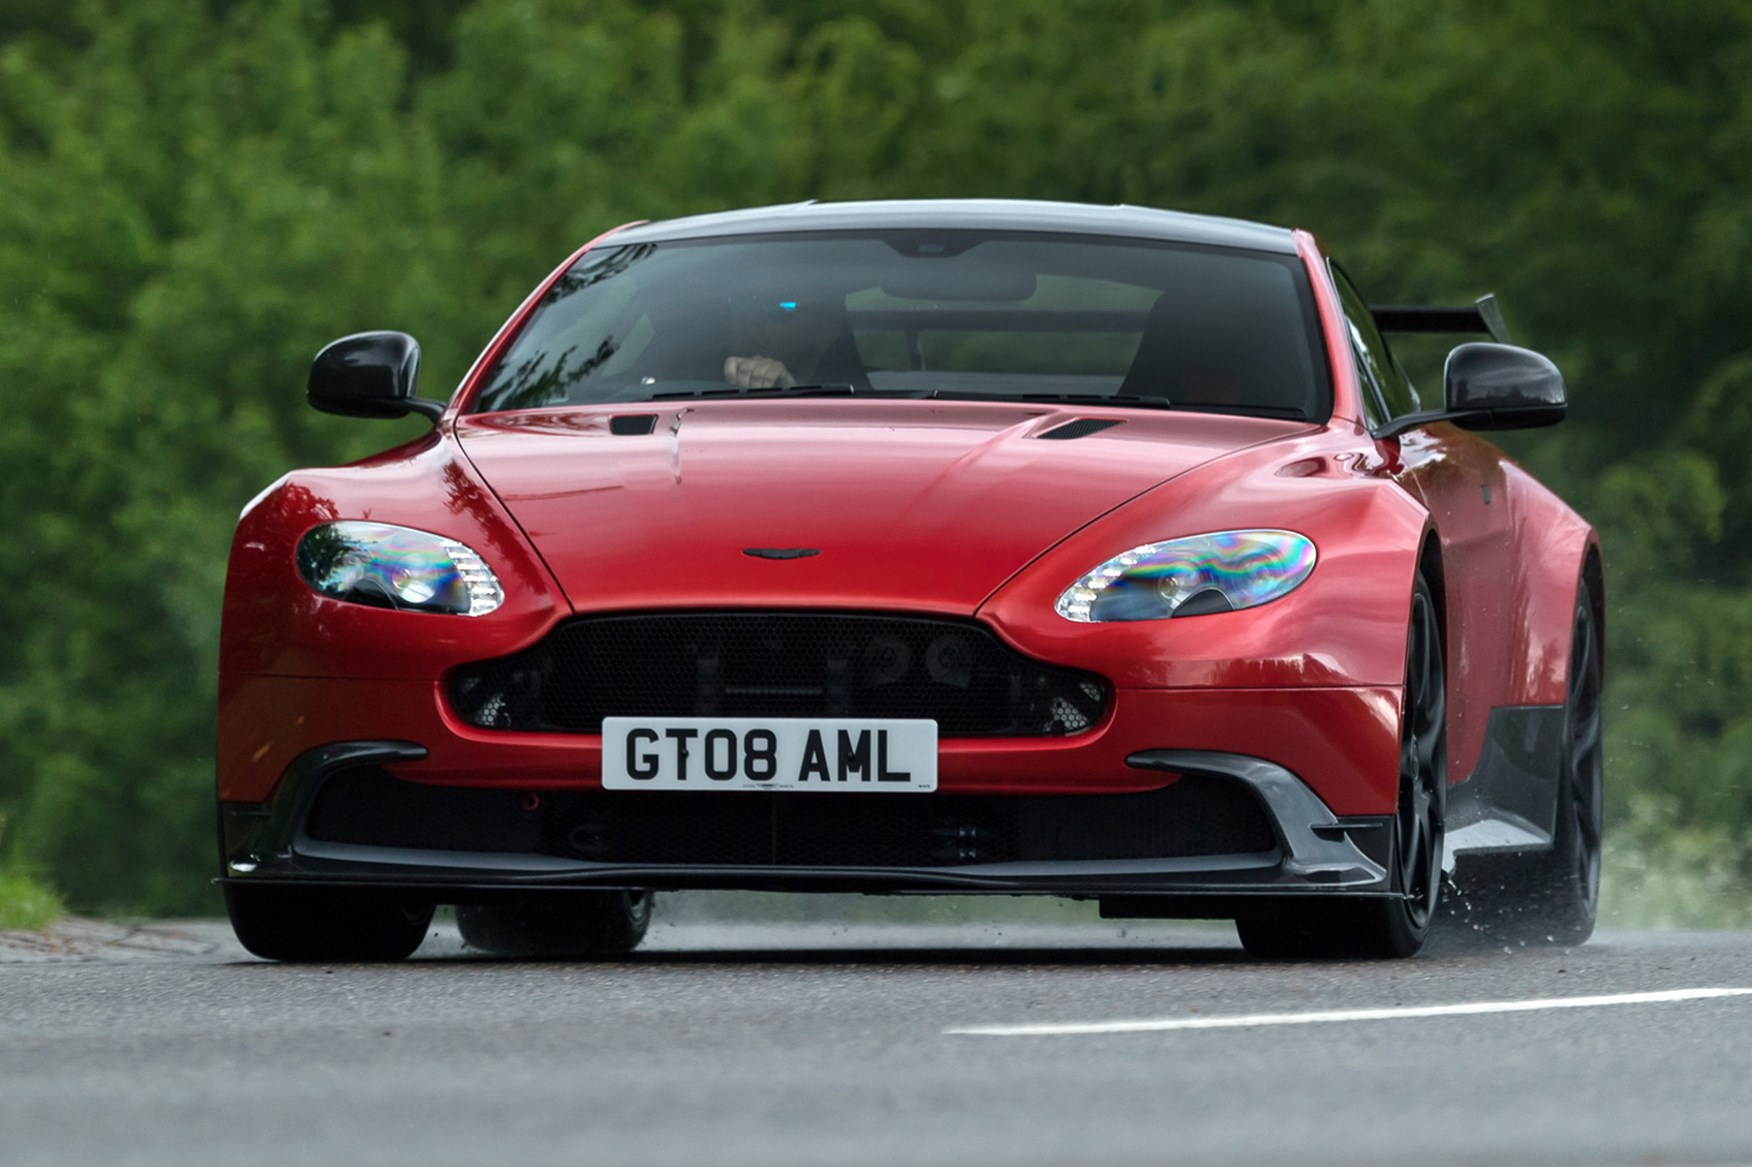 2016 Aston Martin Vantage Gt8 Review